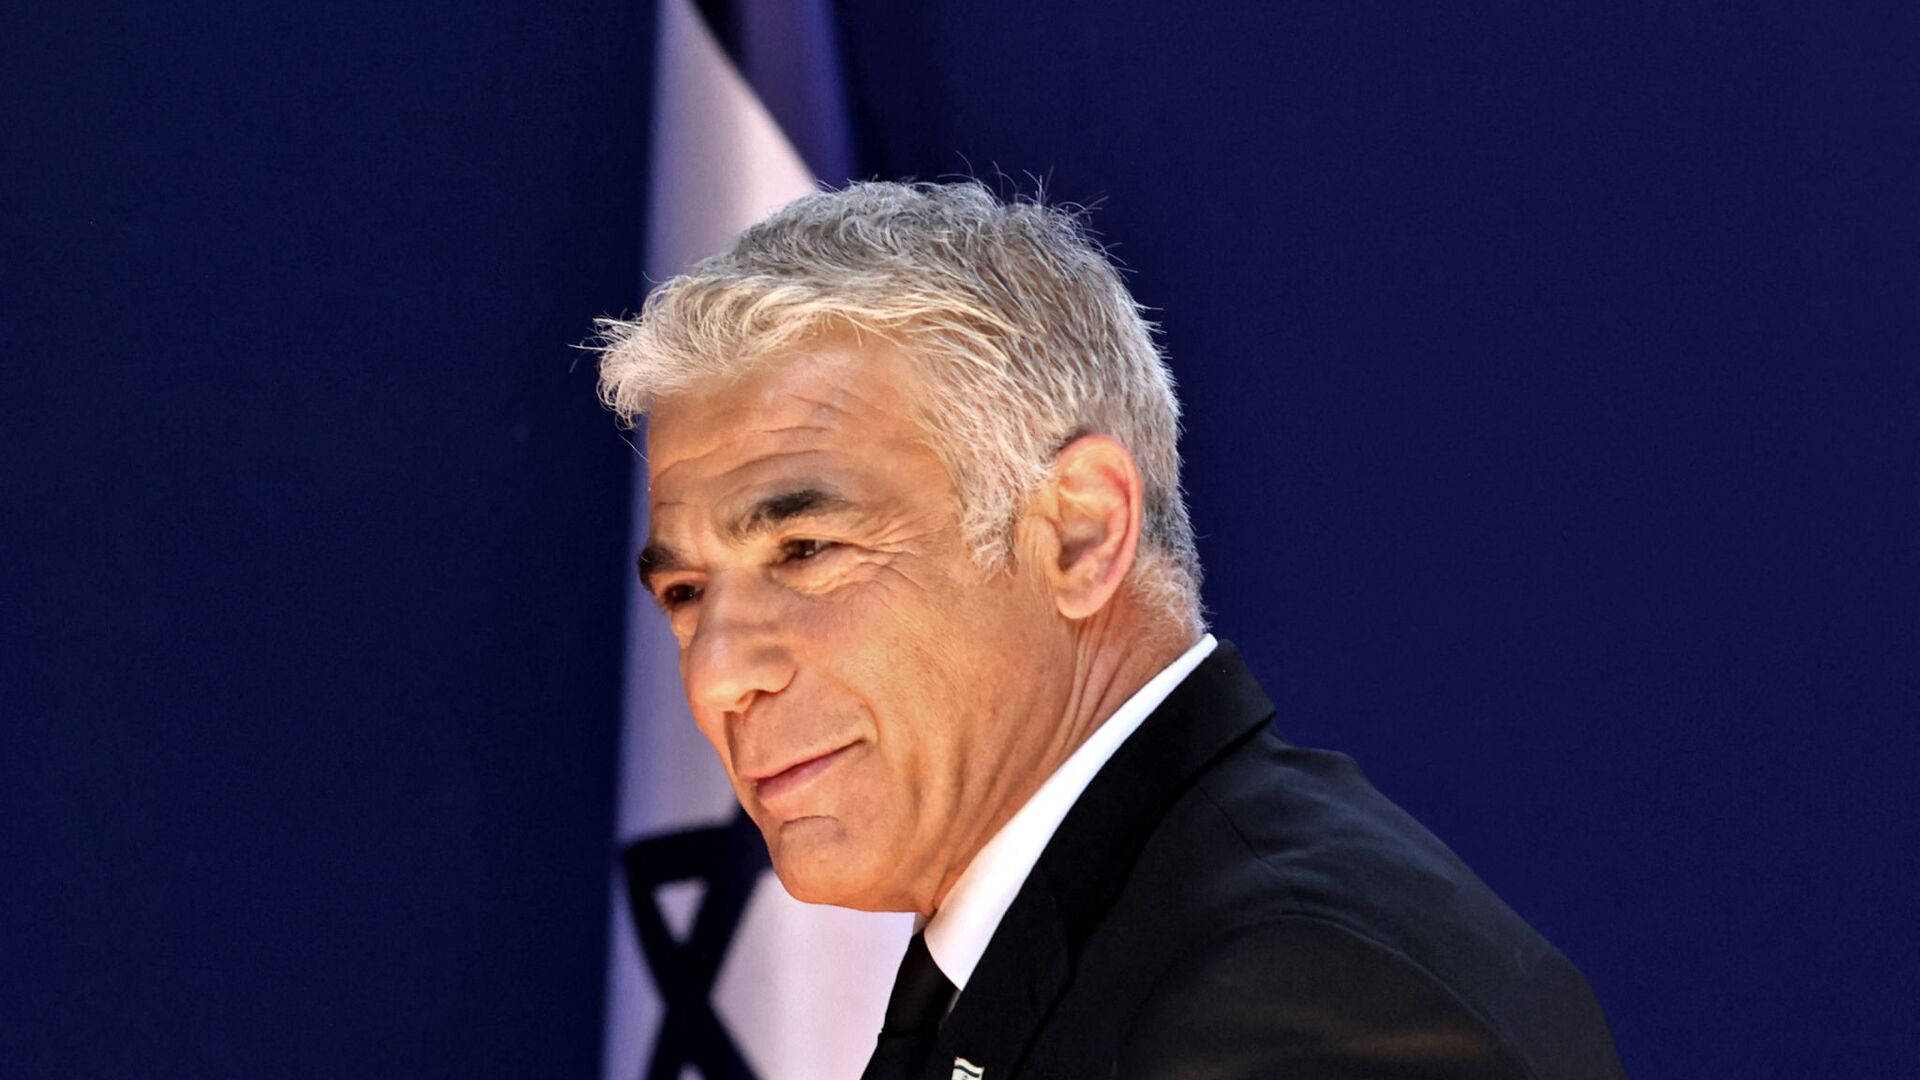 Israeli alternate Prime Minister and Foreign Minister Yair Lapid arrives for a photo at the President's residence during a ceremony for the new coalition government in Jerusalem, on June 14, 2021. - A motley alliance of Israeli parties on June 13 ended Benjamin Netanyahu's 12 straight years as prime minister, as parliament voted in a new government led by his former ally, right-wing Jewish nationalist Naftali Bennett. - Sputnik International, 1920, 11.09.2021